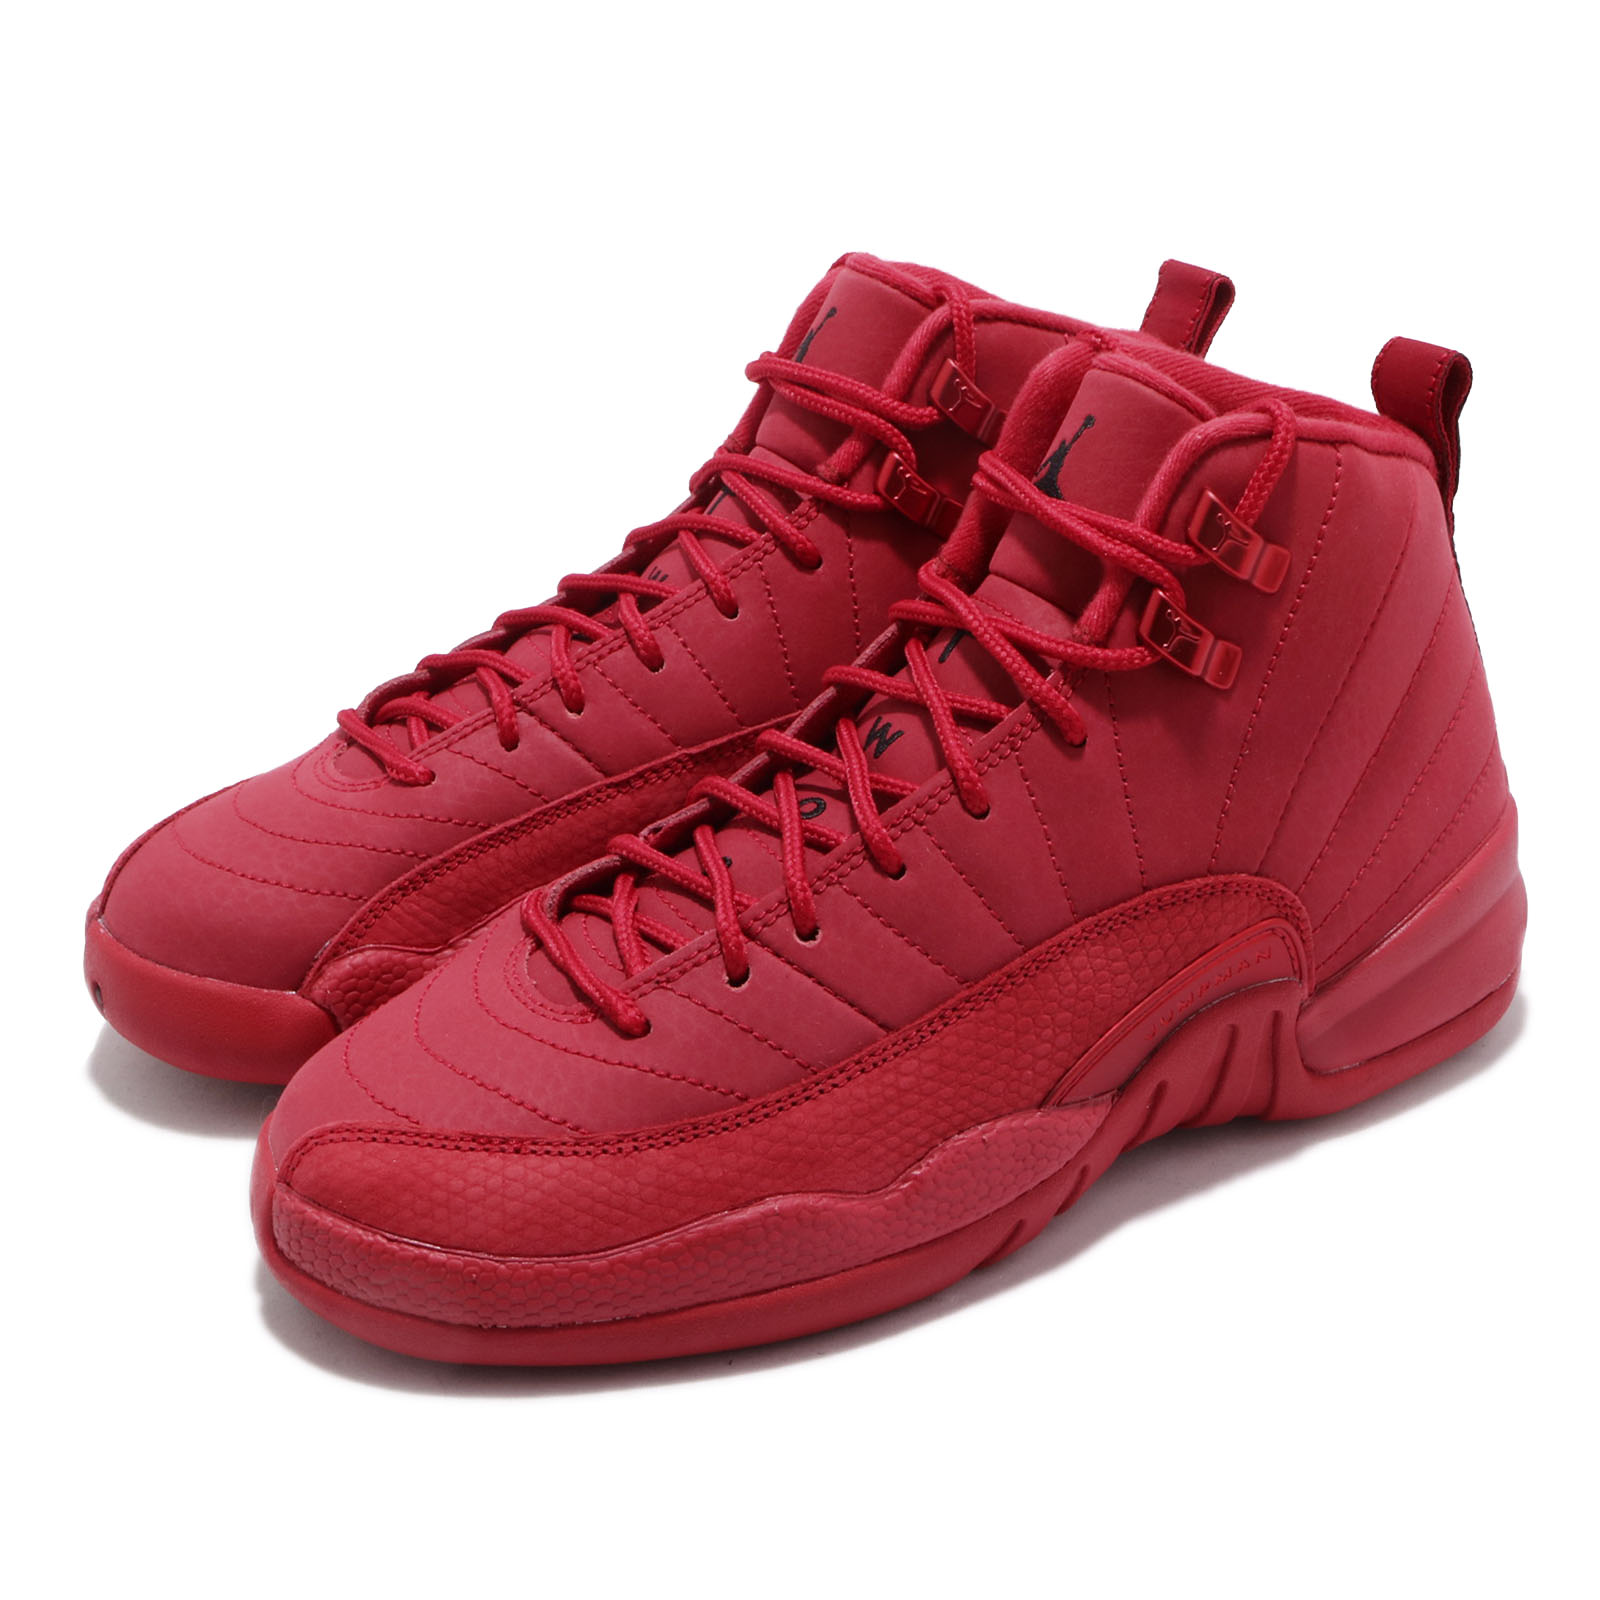 los angeles cf5da 4ec43 Details about Nike Air Jordan 12 Retro GS XII AJ12 Gym Red Bulls Toro Youth  Womens 153265-601